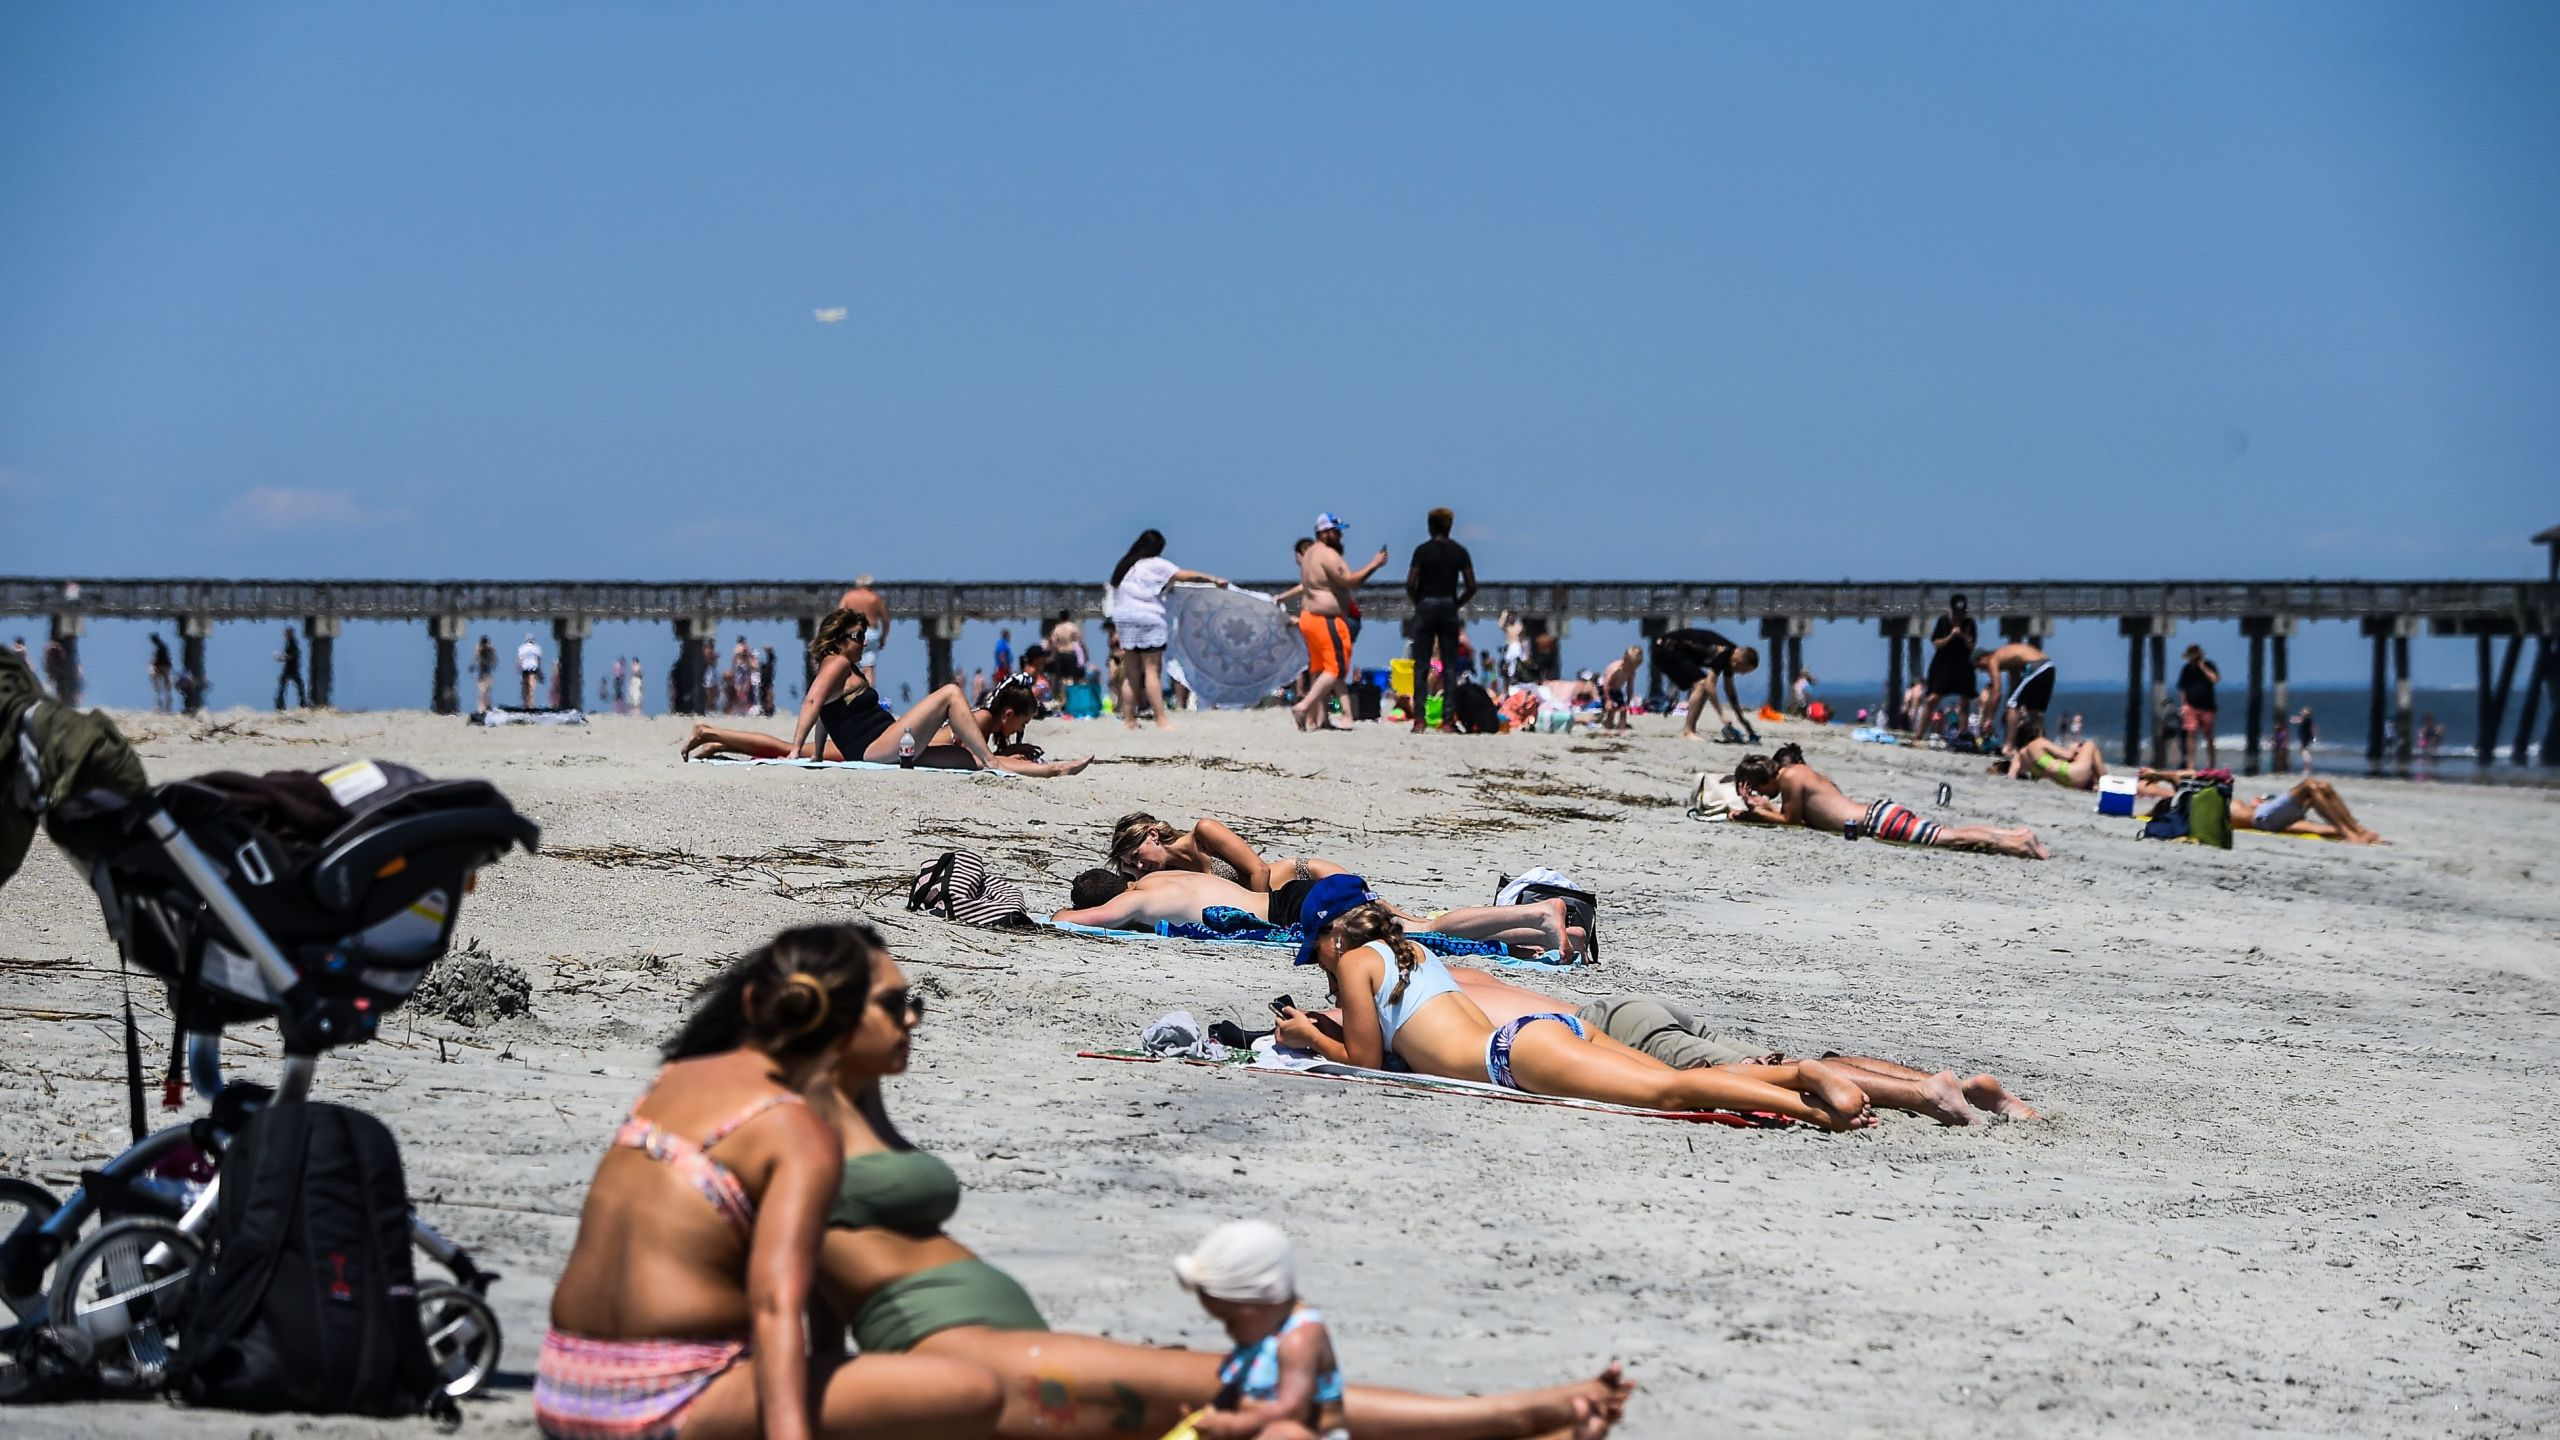 People relax on the Tybee Beach in Tybee Island, Georgia on April 25, 2020. The Tybee Island city council voted to close the beaches on March 20, but Georgia Gov. Brian Kemp issued a statewide shelter-in-place executive order which supersedes all local orders relating to coronavirus and also opened up the state's beaches. (CHANDAN KHANNA/AFP via Getty Images)